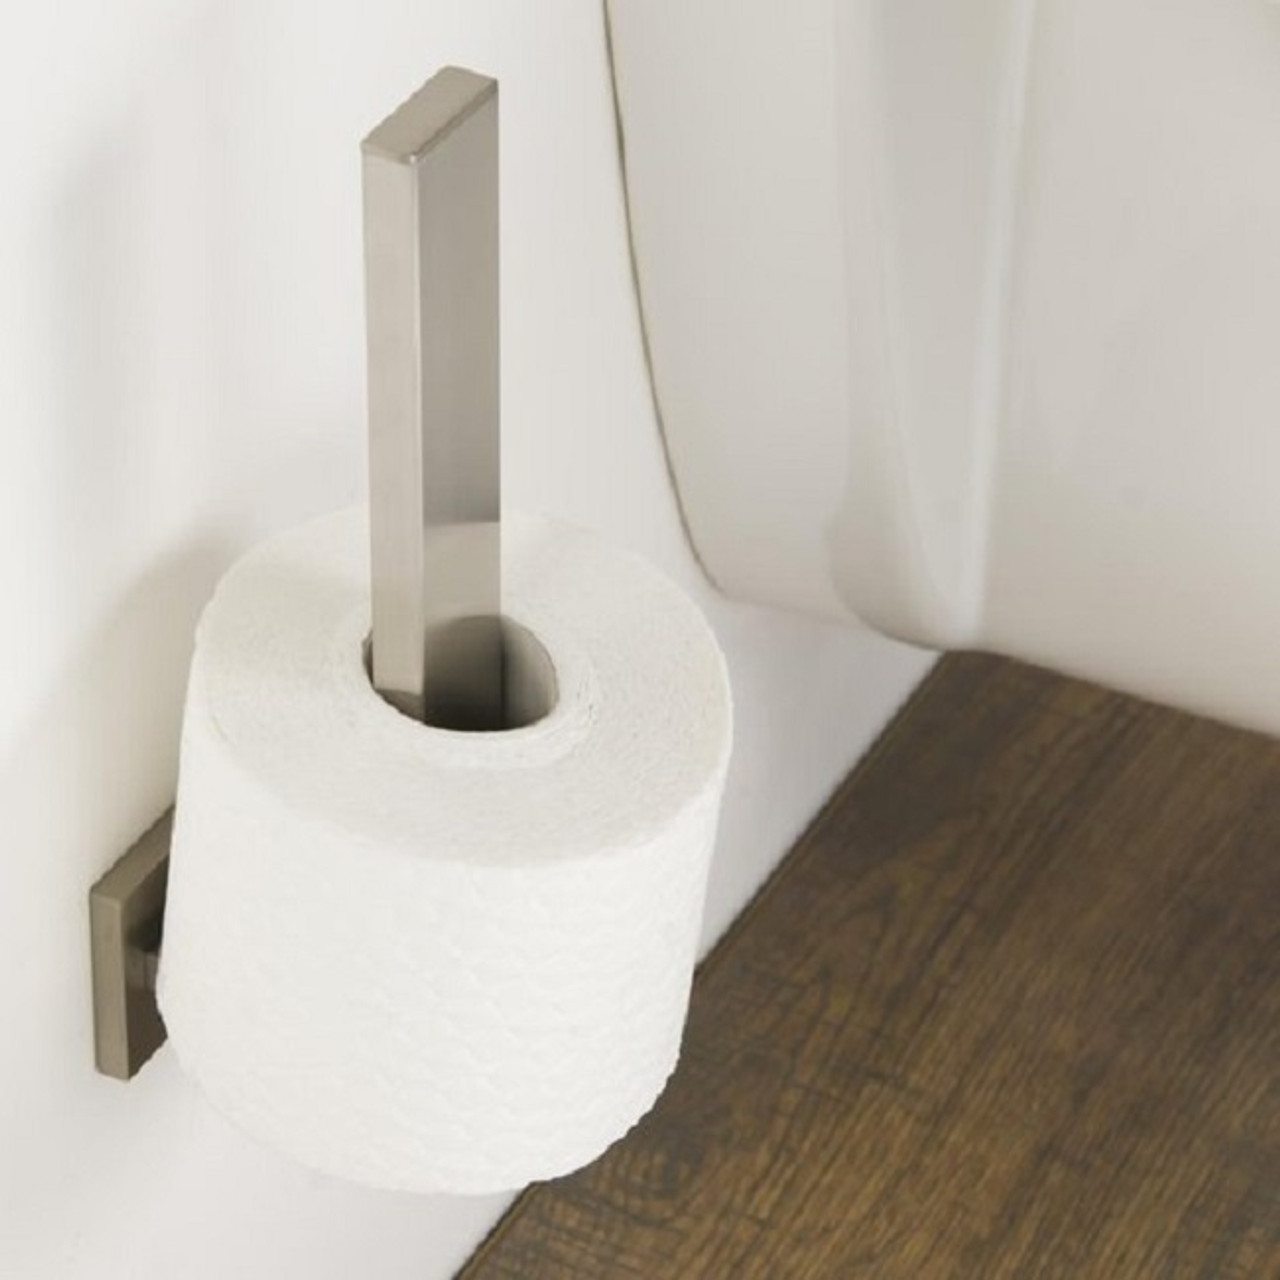 spare toilet paper roll